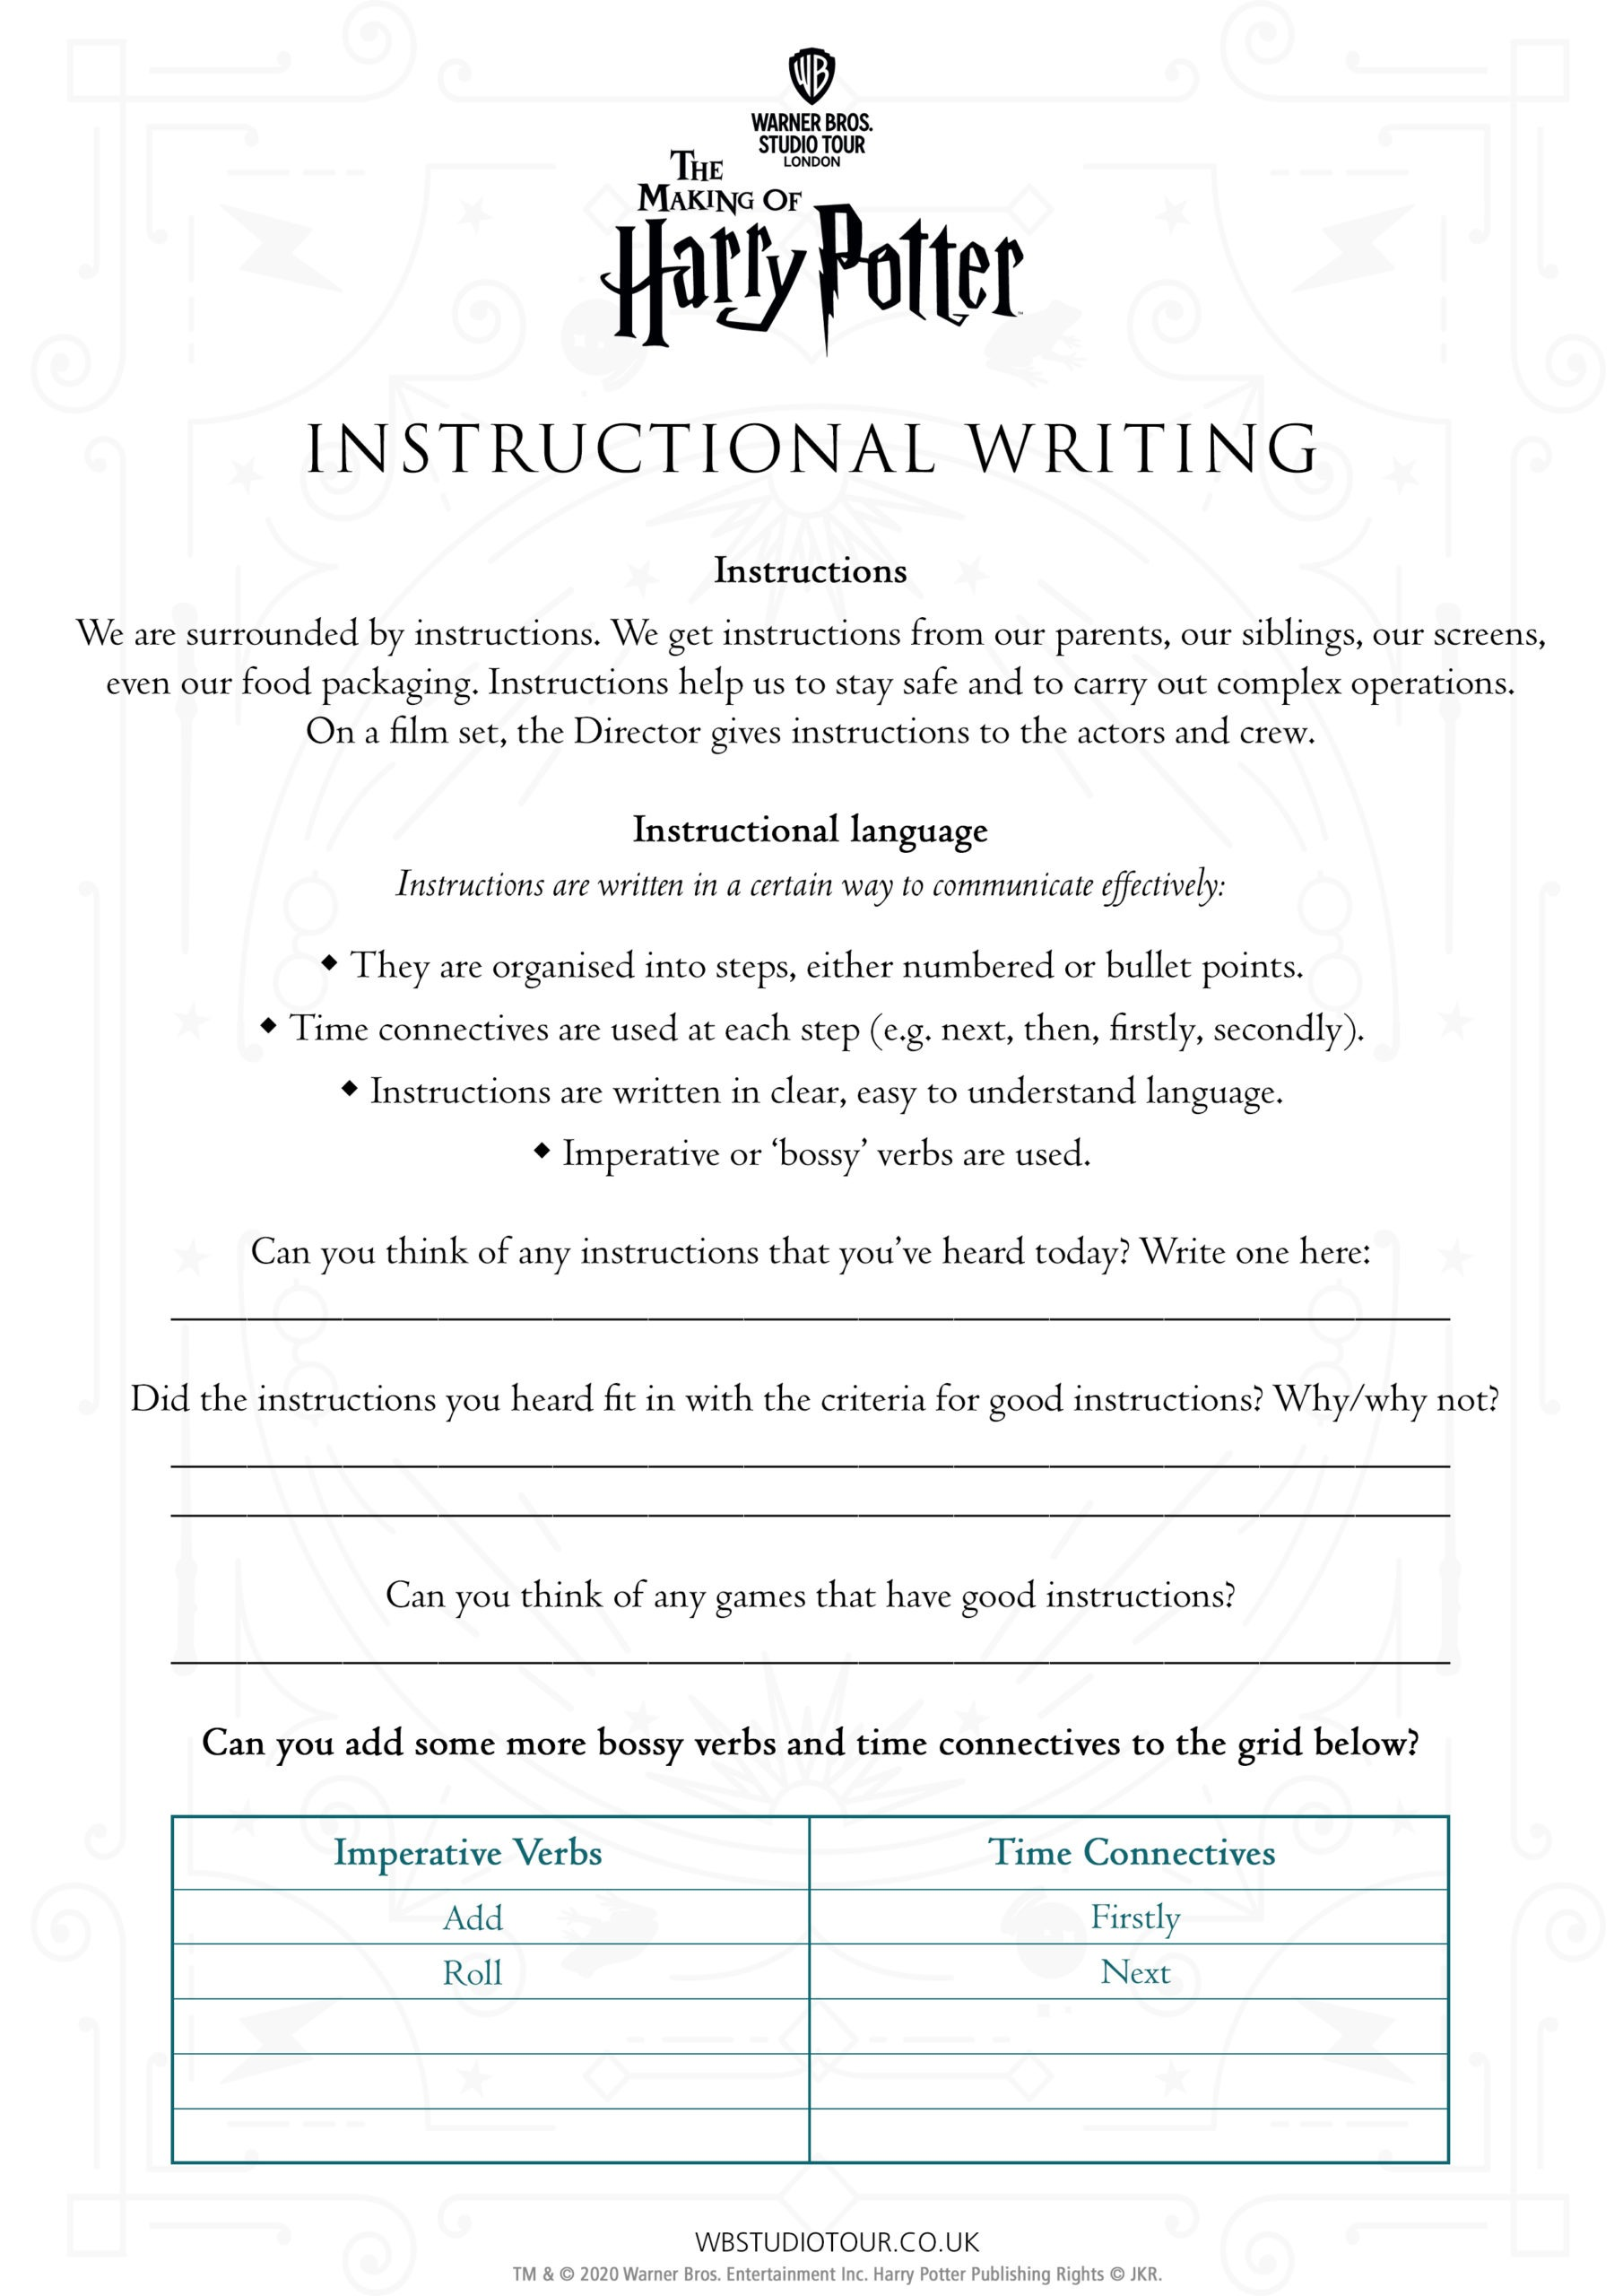 Instructional Writing activity worksheets page 1 - Studio Tour at Home